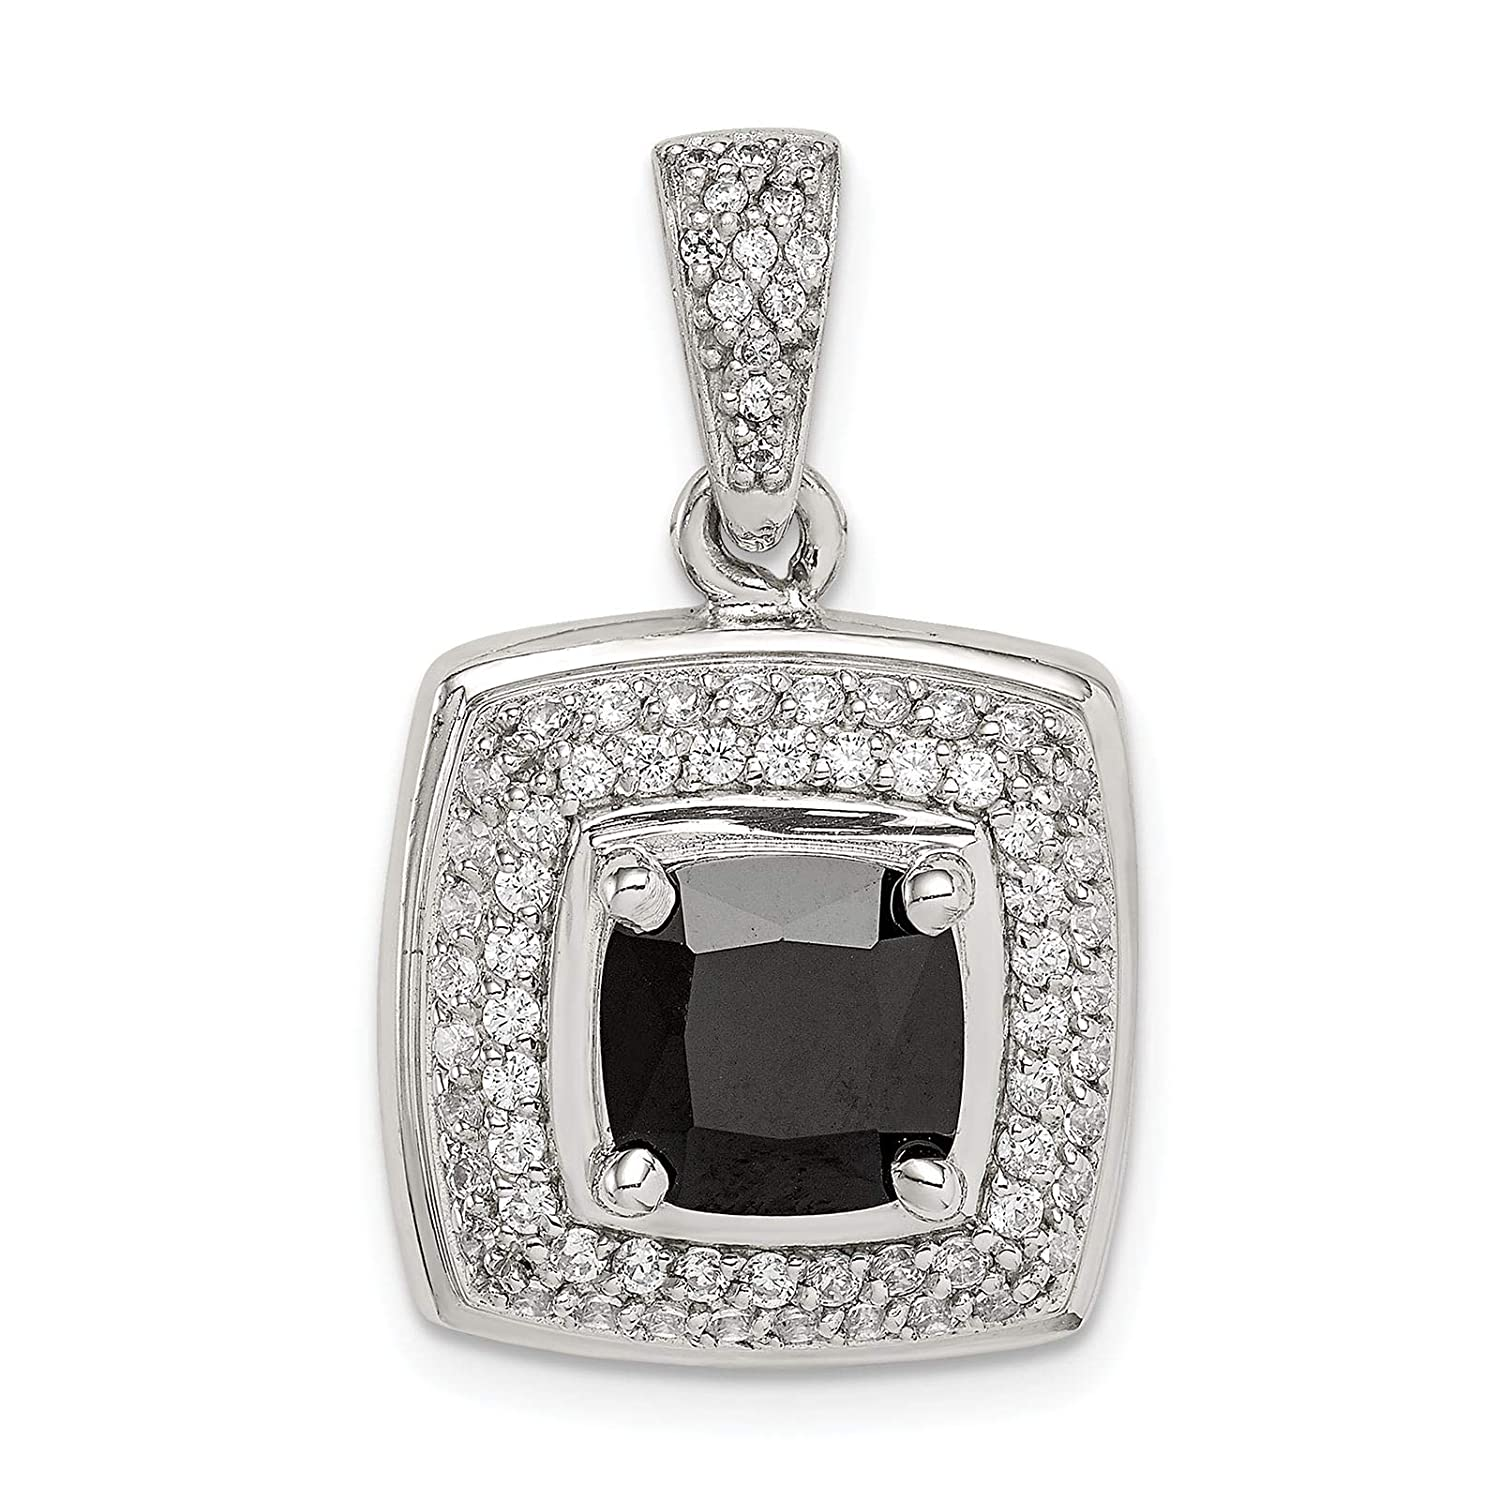 925 Sterling Silver Polished CZ /& Black Onyx Square Charm Pendant